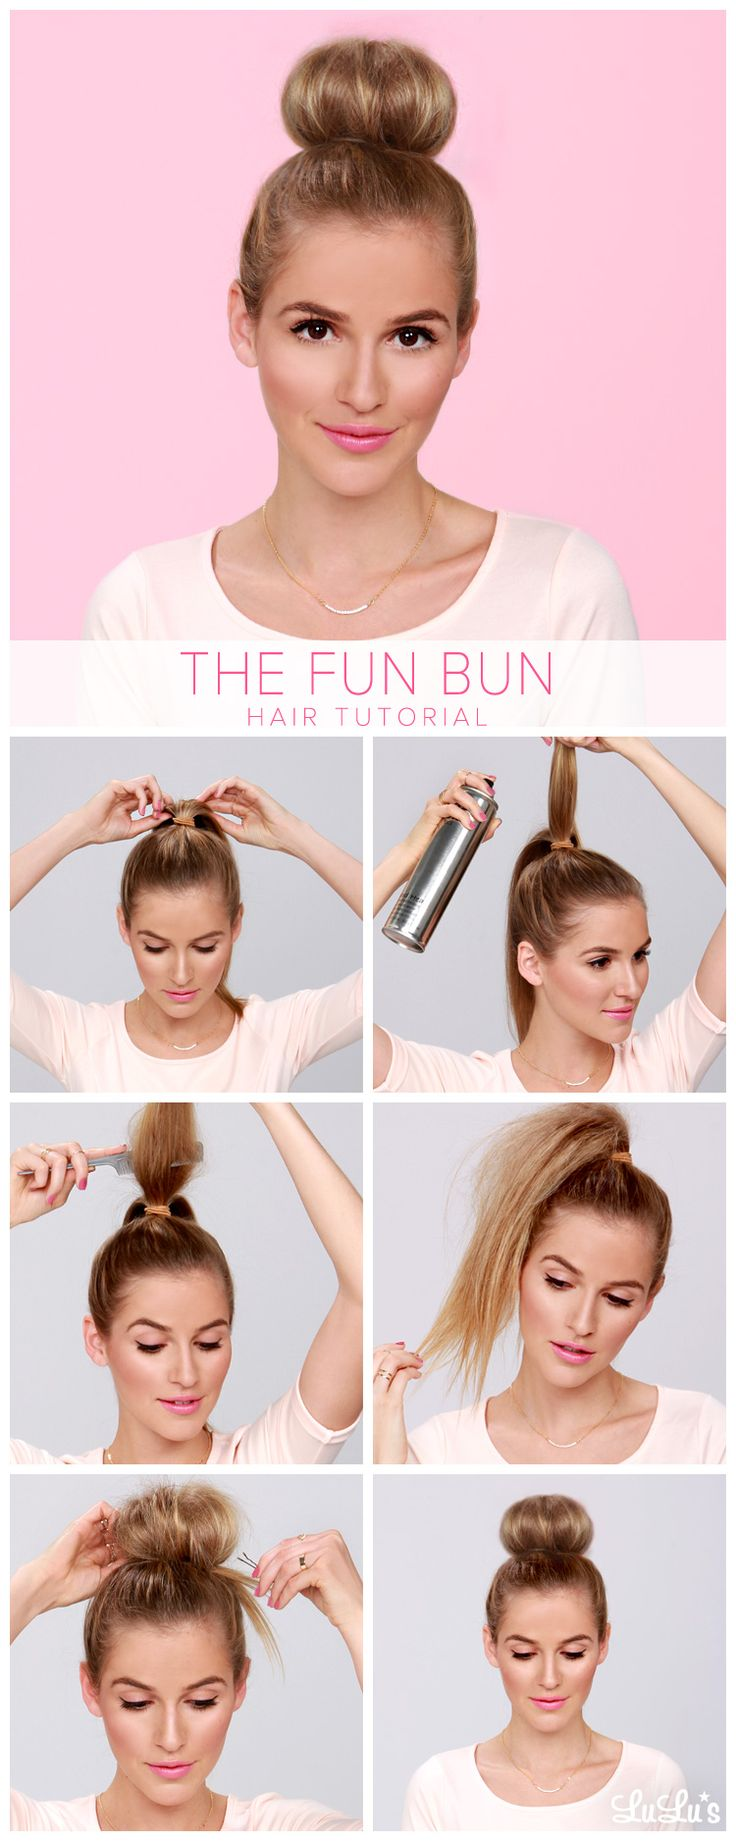 LuLu*s How-To: The Fun Bun Hair Tutorial at LuLus.com!